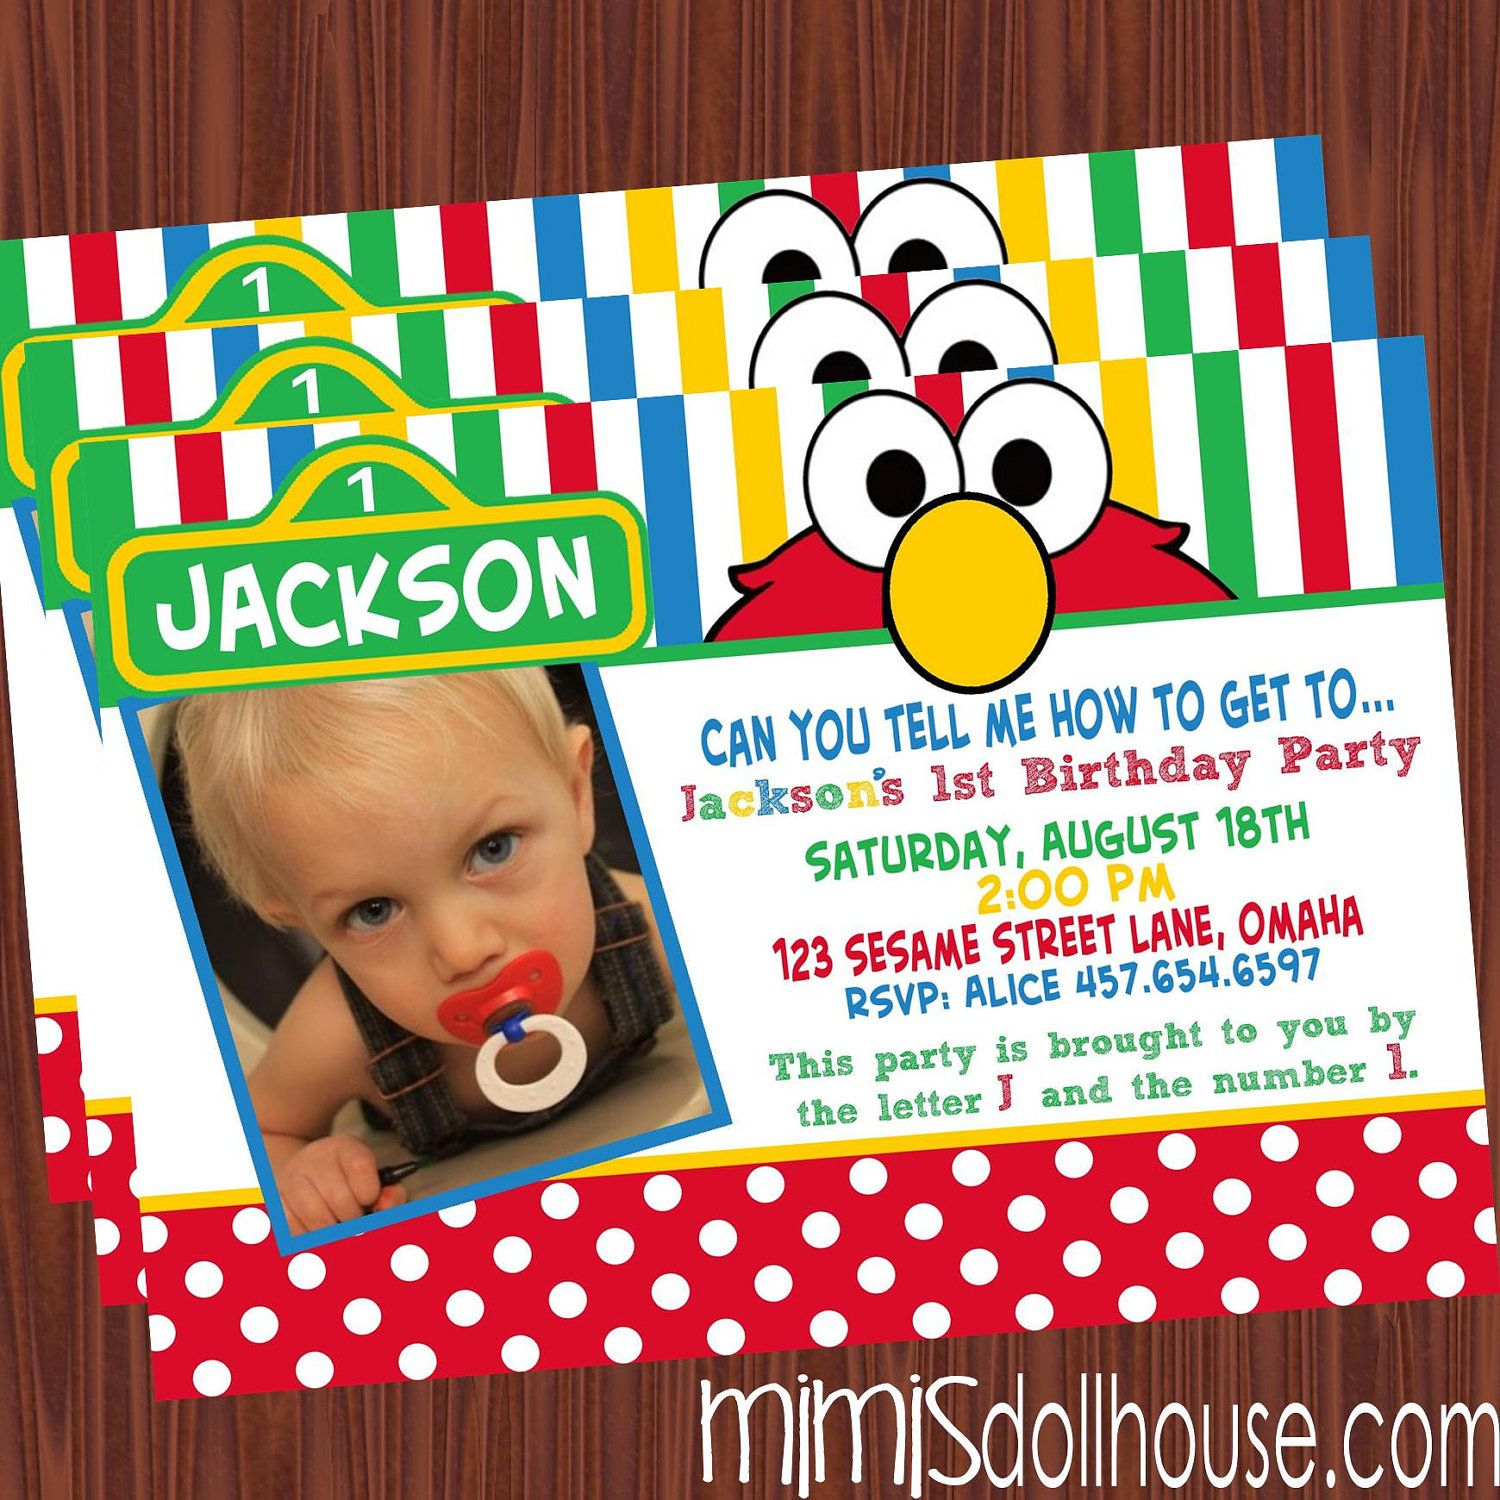 Elmo 1st birthday party ideas birthday party sesamestreet - Elmo Invitation Sesame Street Invitation Birthday Invitation Pdf Jpeg